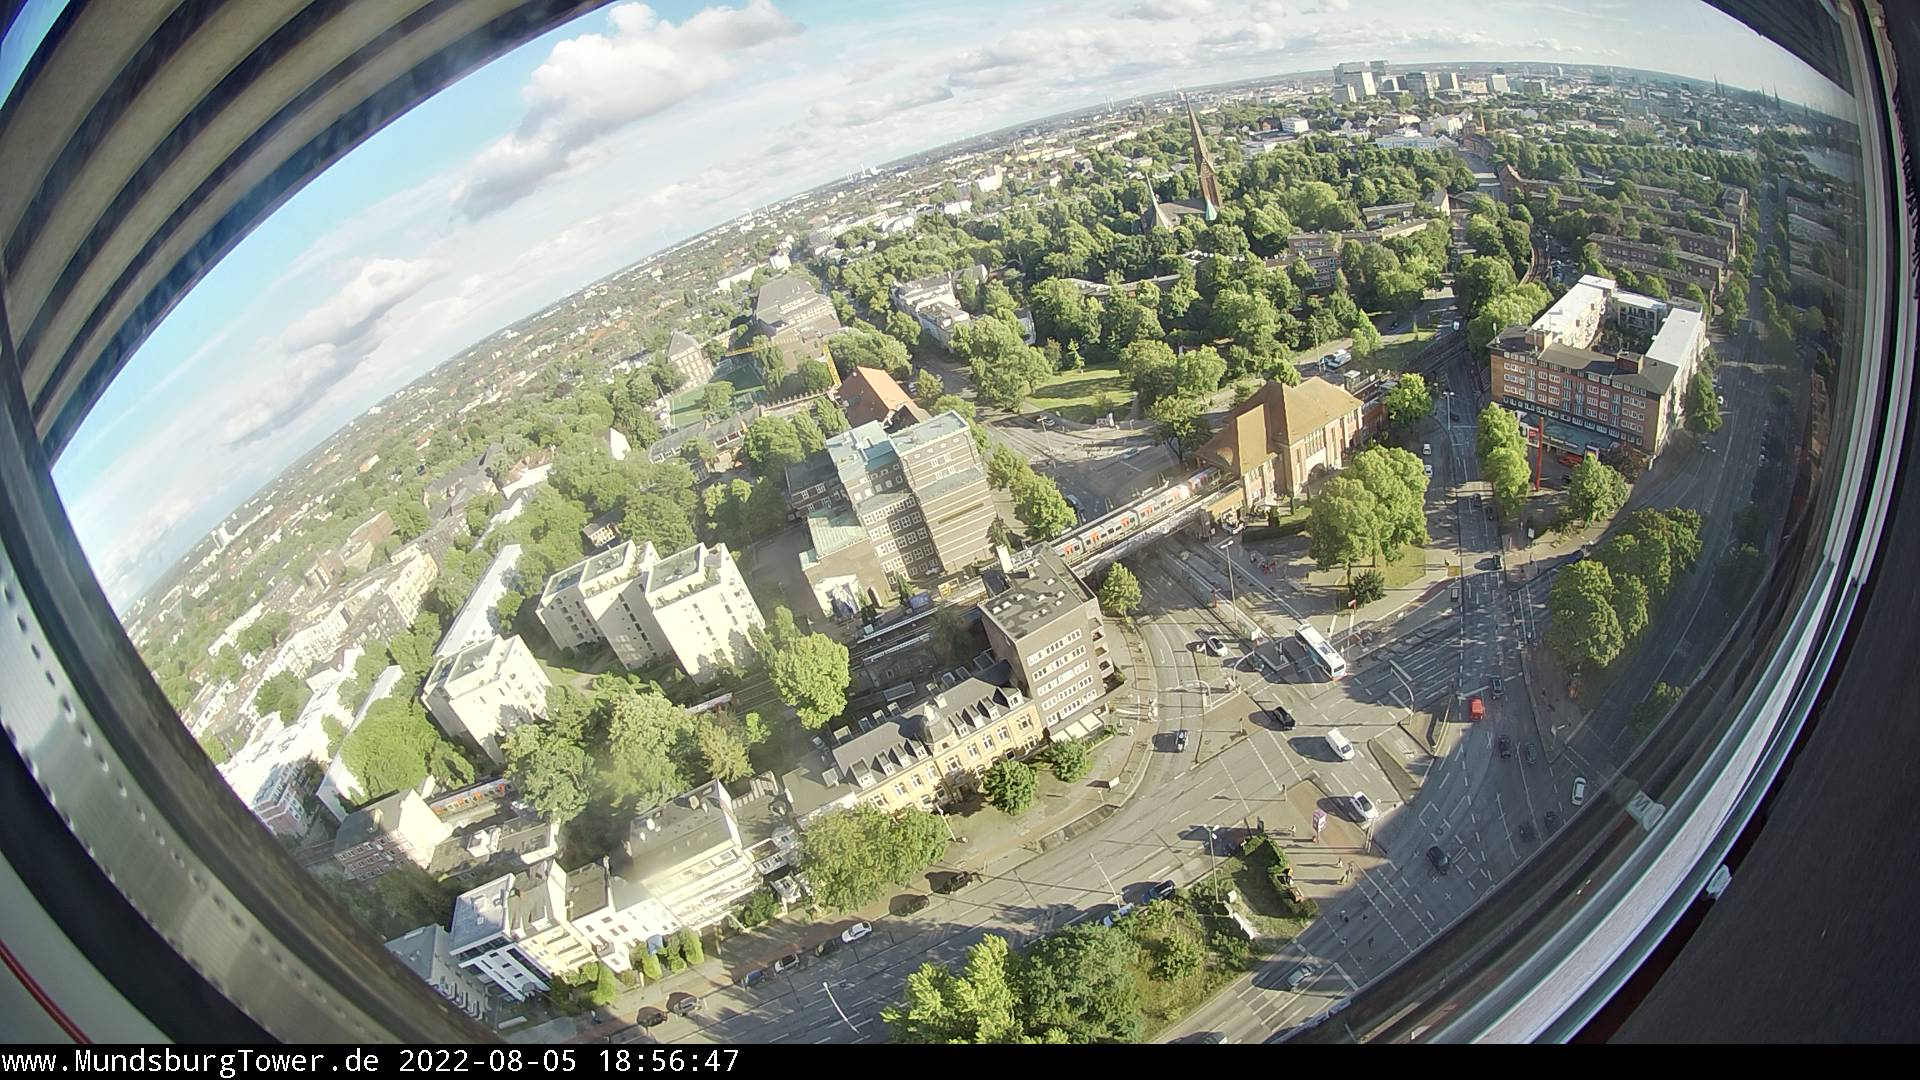 Hamburg webcam - Mundsburg Tower webcam, Hamburg, Hamburg